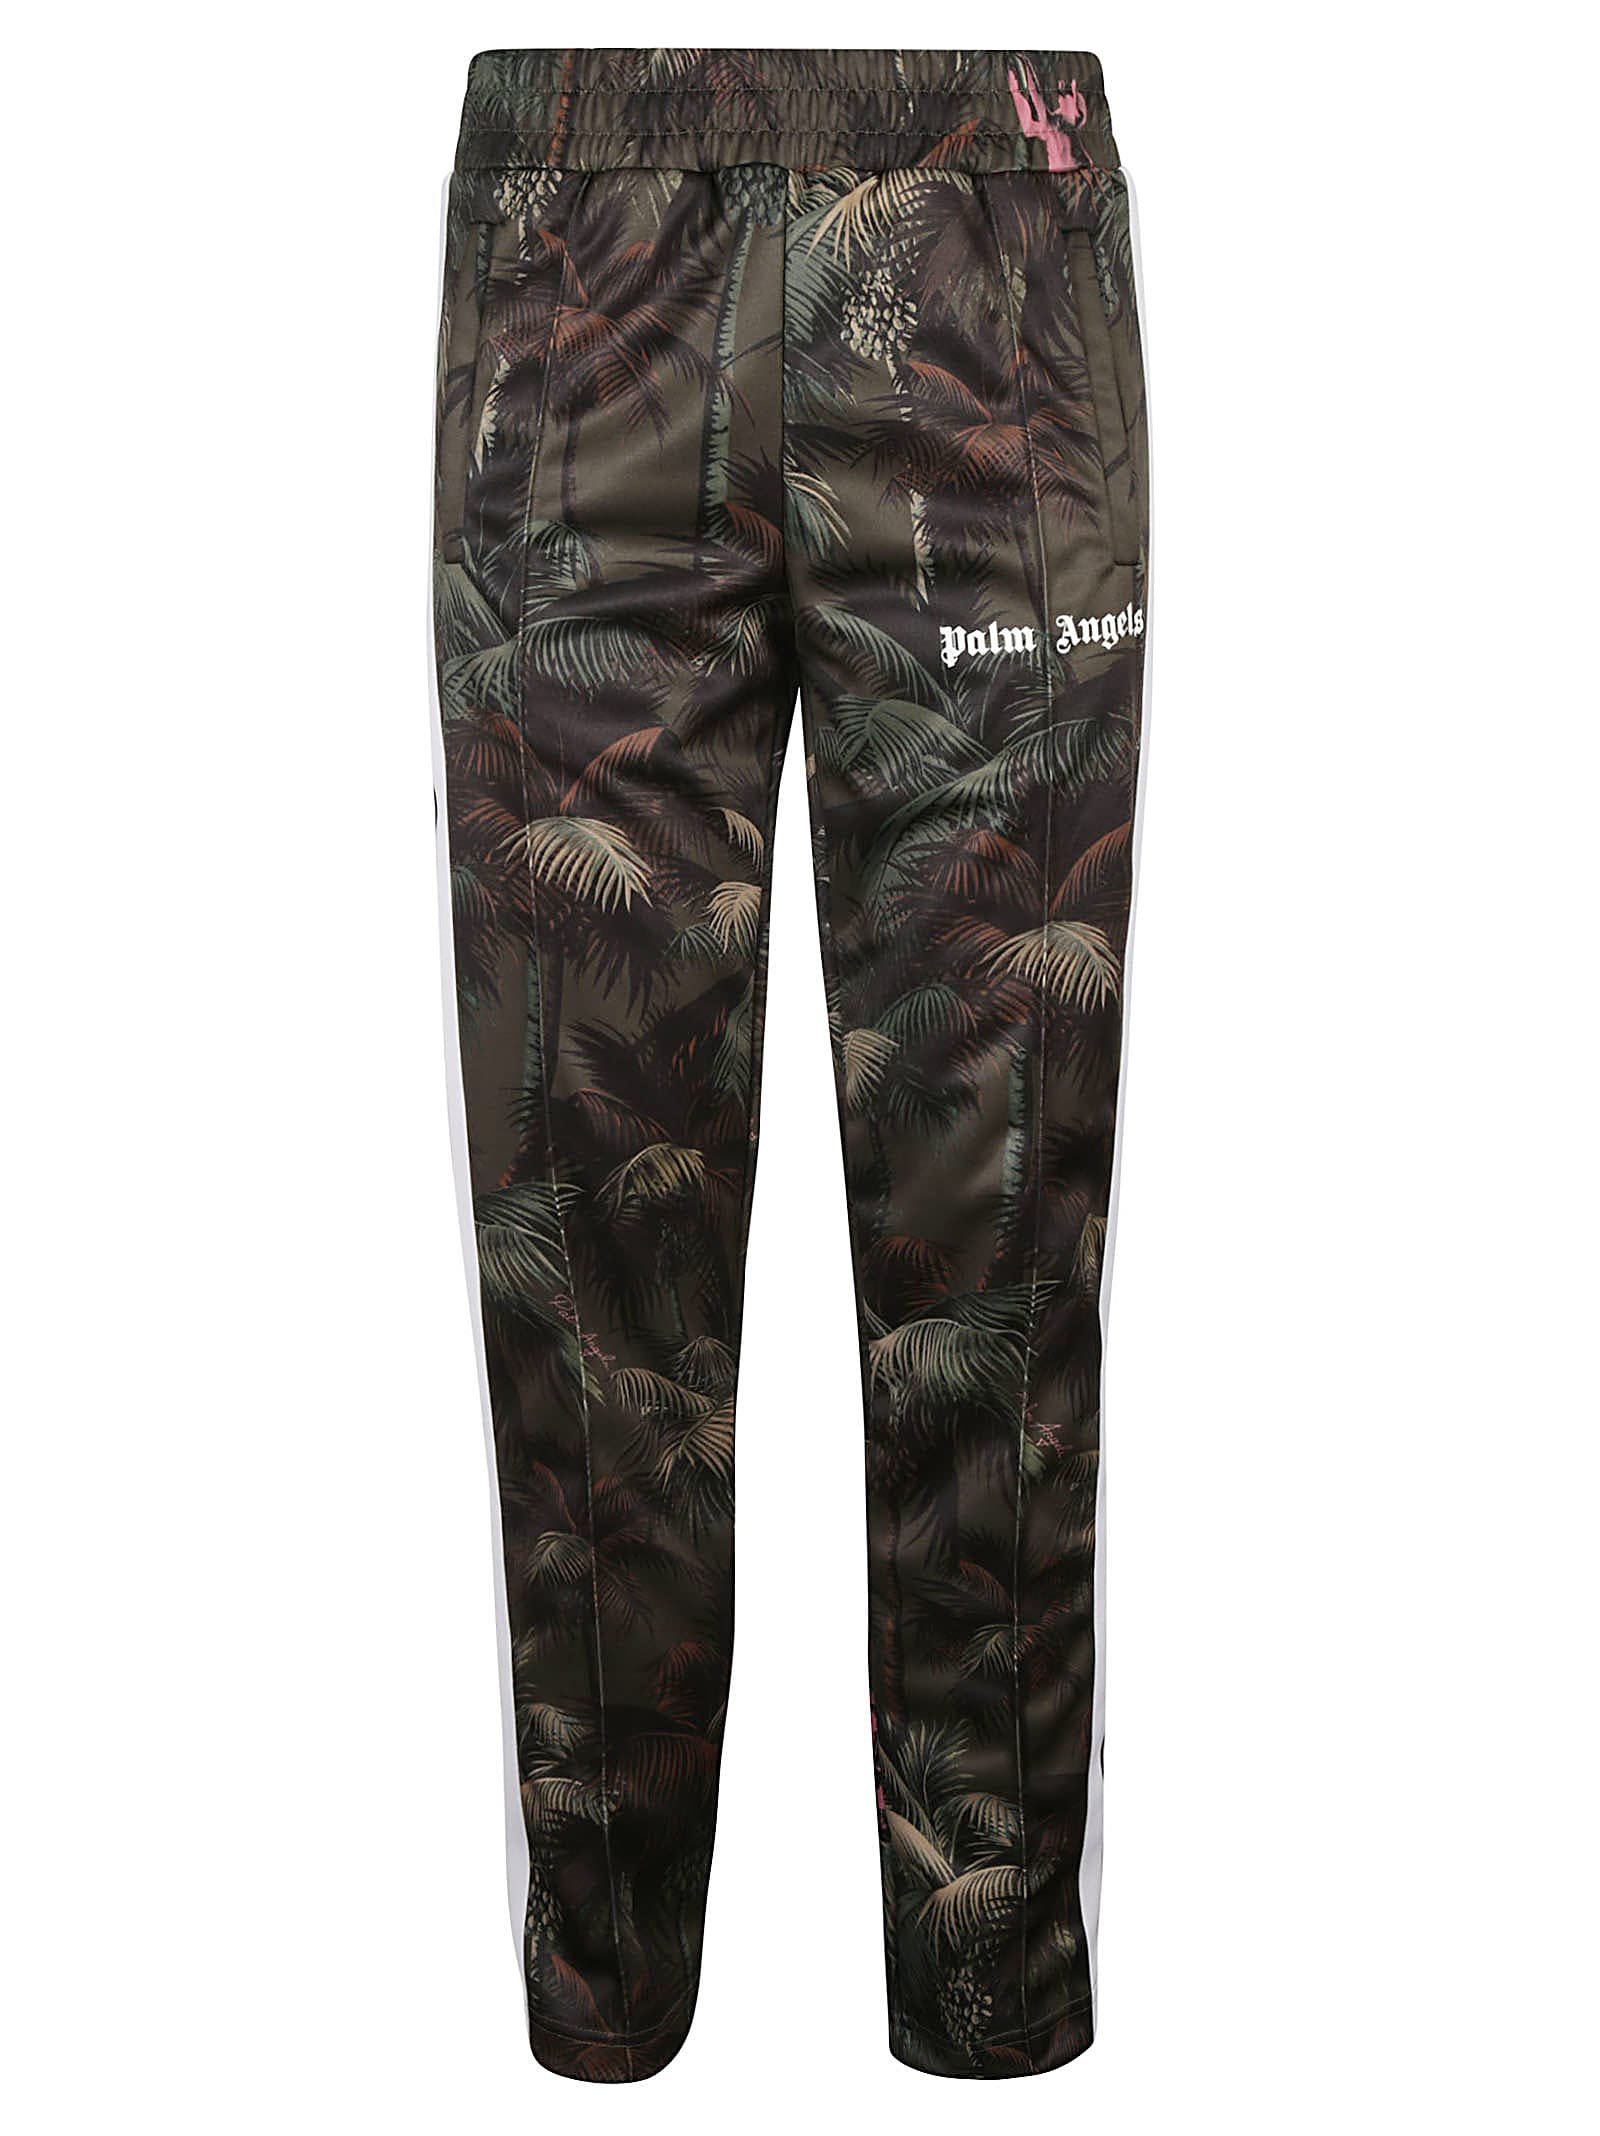 Palm Angels Jungle Classic Track Pants